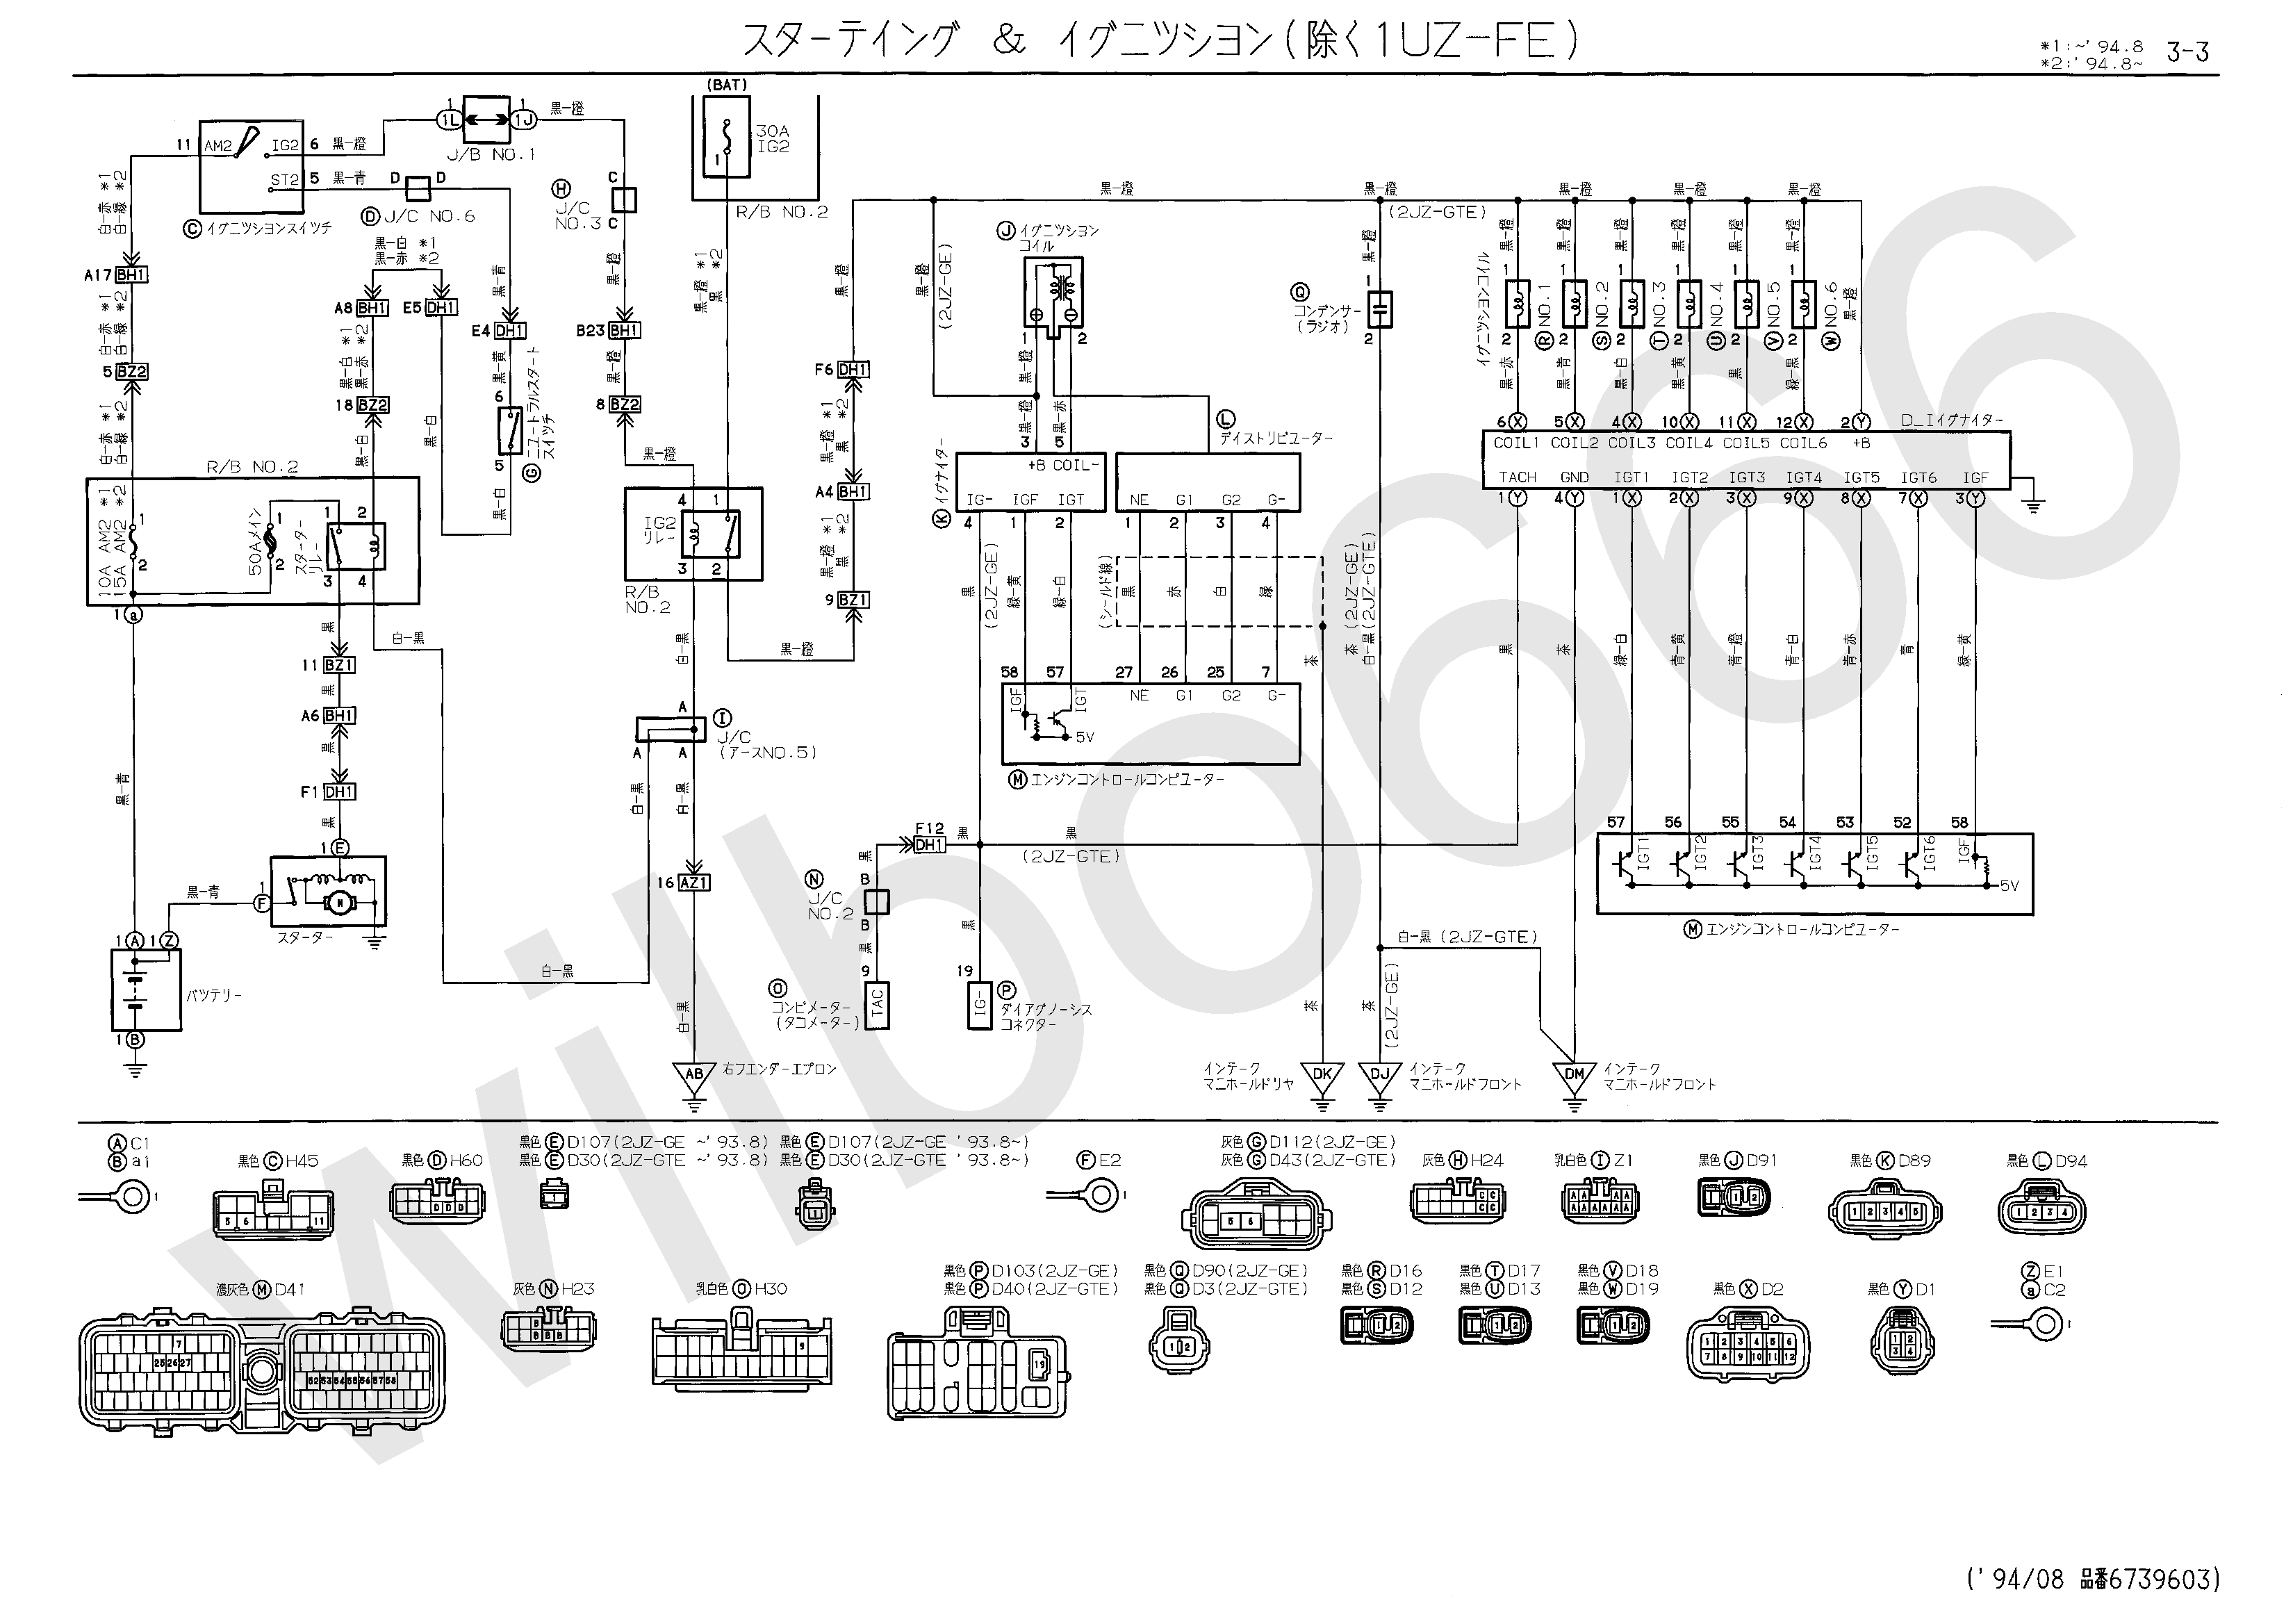 1991 toyota pickup fuel pump wiring diagram images wiring harness toyota cressida 1991 wiring diagram website